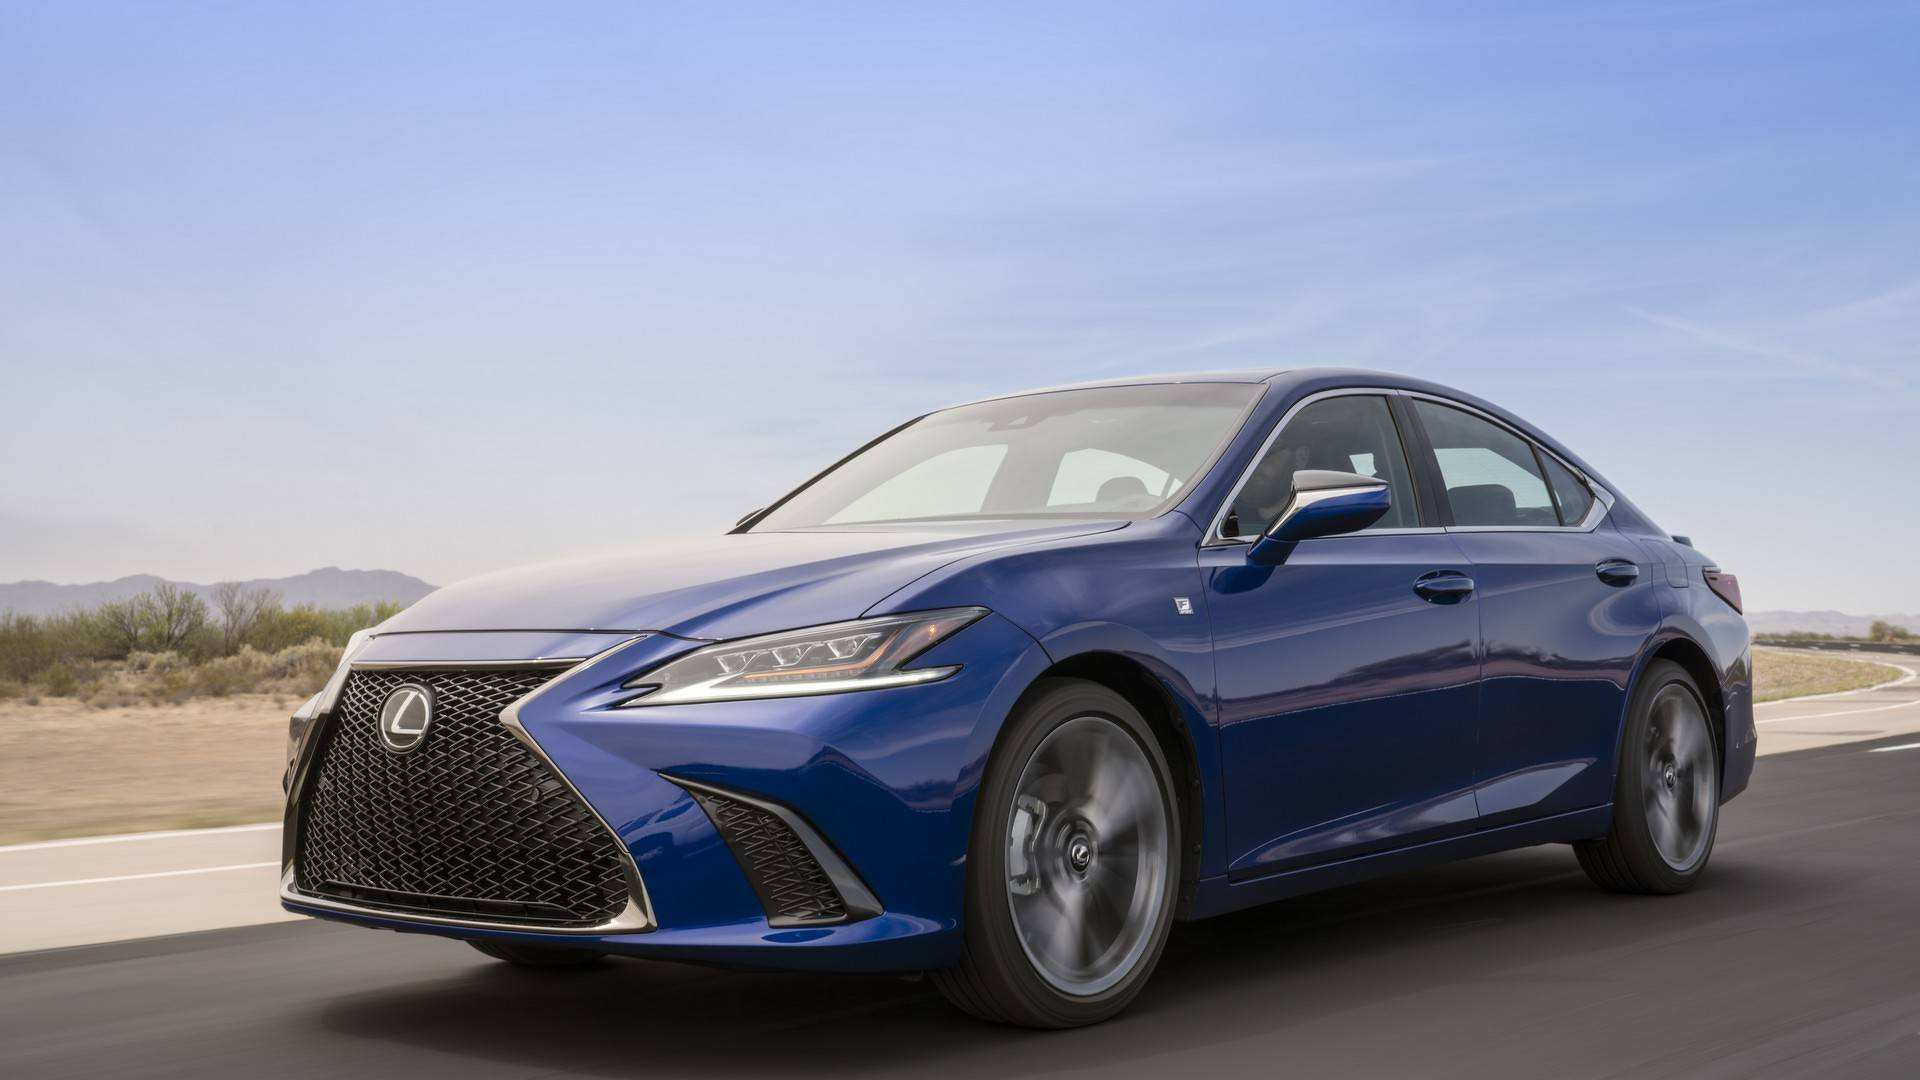 84 All New Are The 2019 Lexus Out Yet Images